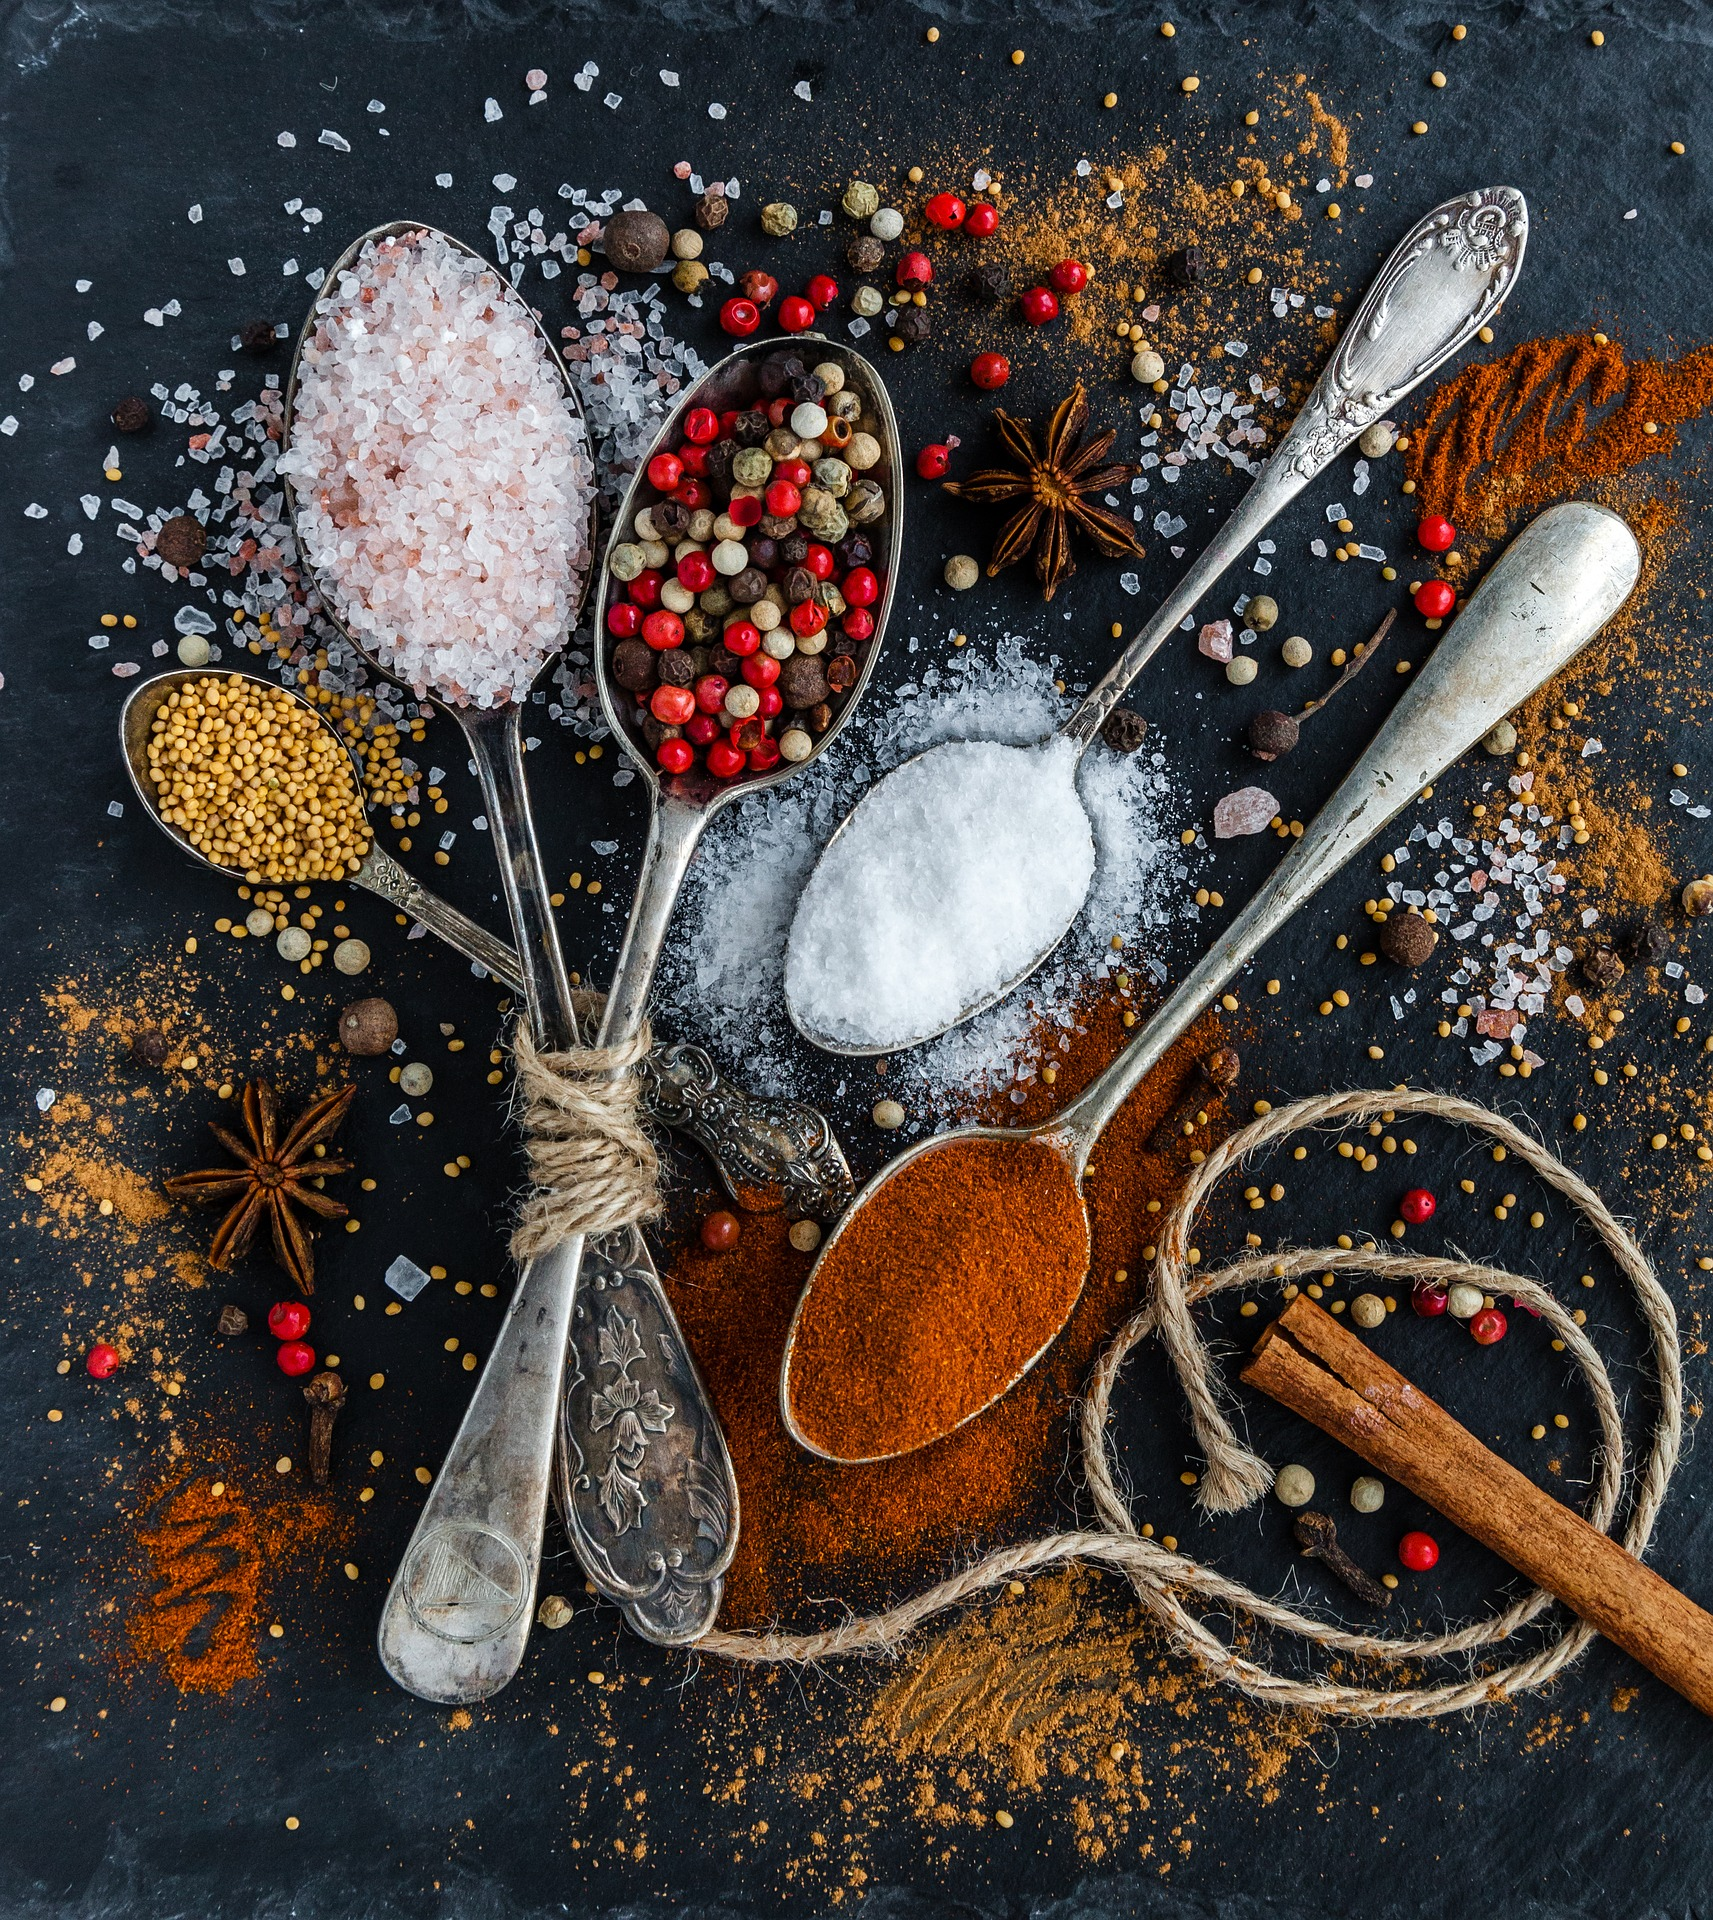 Image of four spoons, heaped with different ingredients: cinnamon, salt, and two other colourful condiments